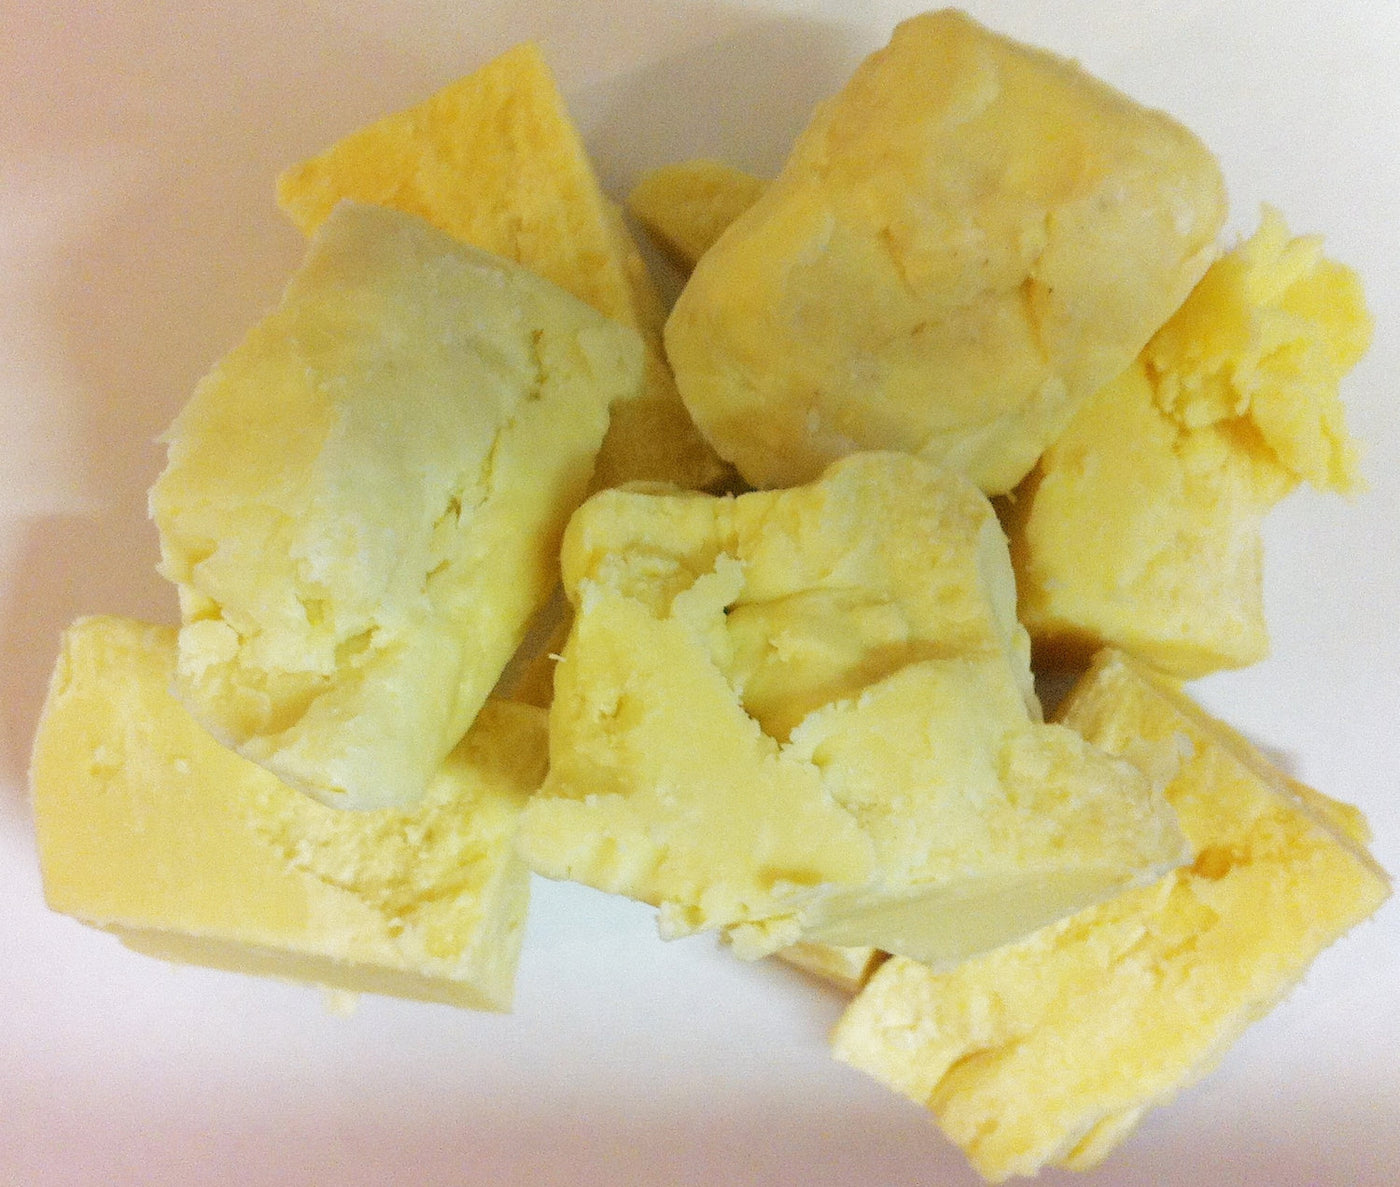 Unrefined Shea Butter per 50g (2oz) and 100g (4oz)